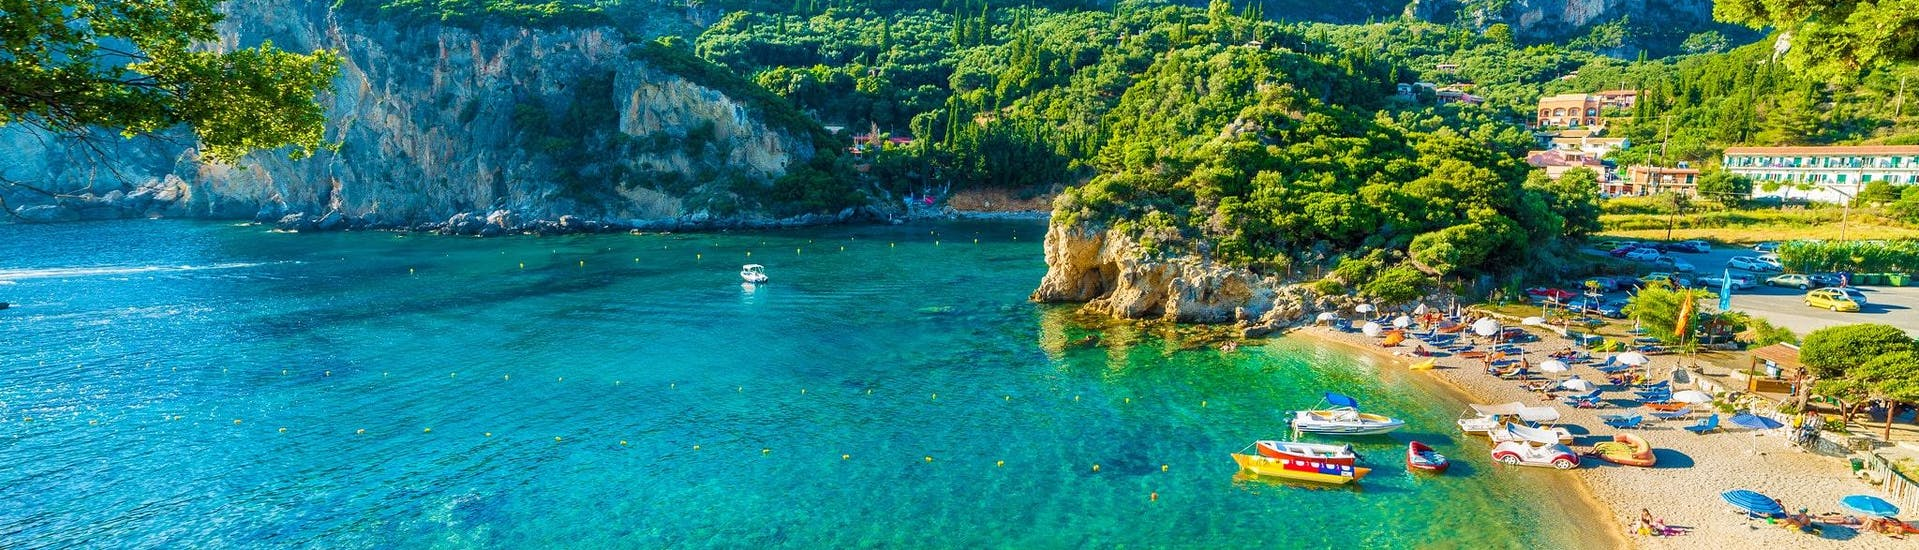 View of a beautiful beach in Corfu, where many watersports activities take place.